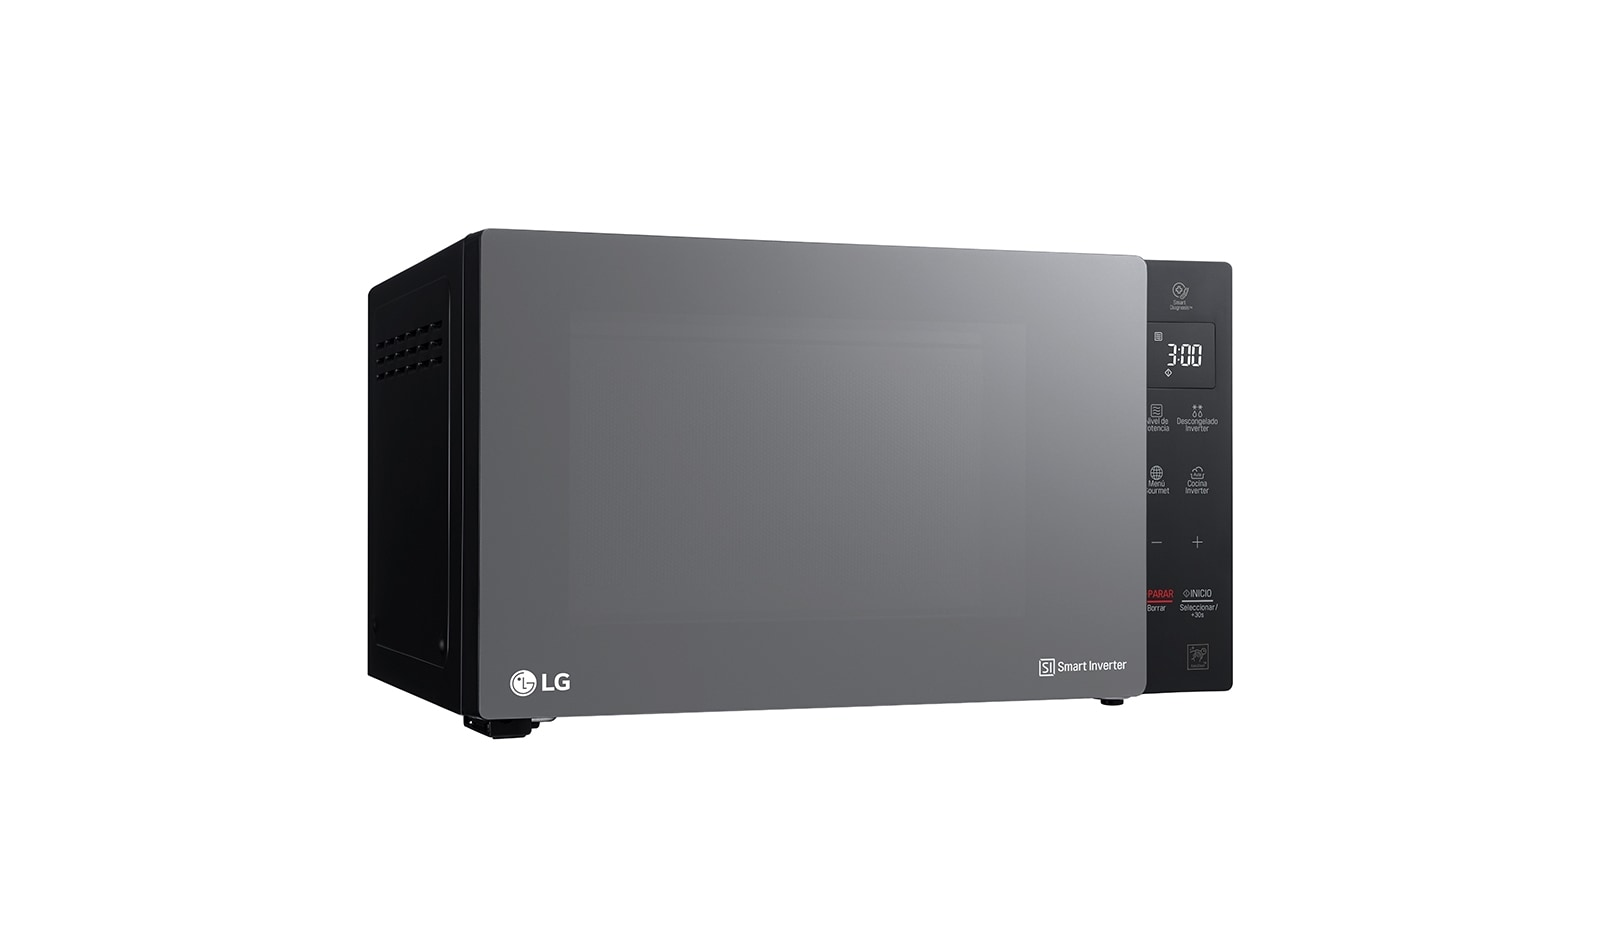 Neochef Smart Inverter Microwave Oven